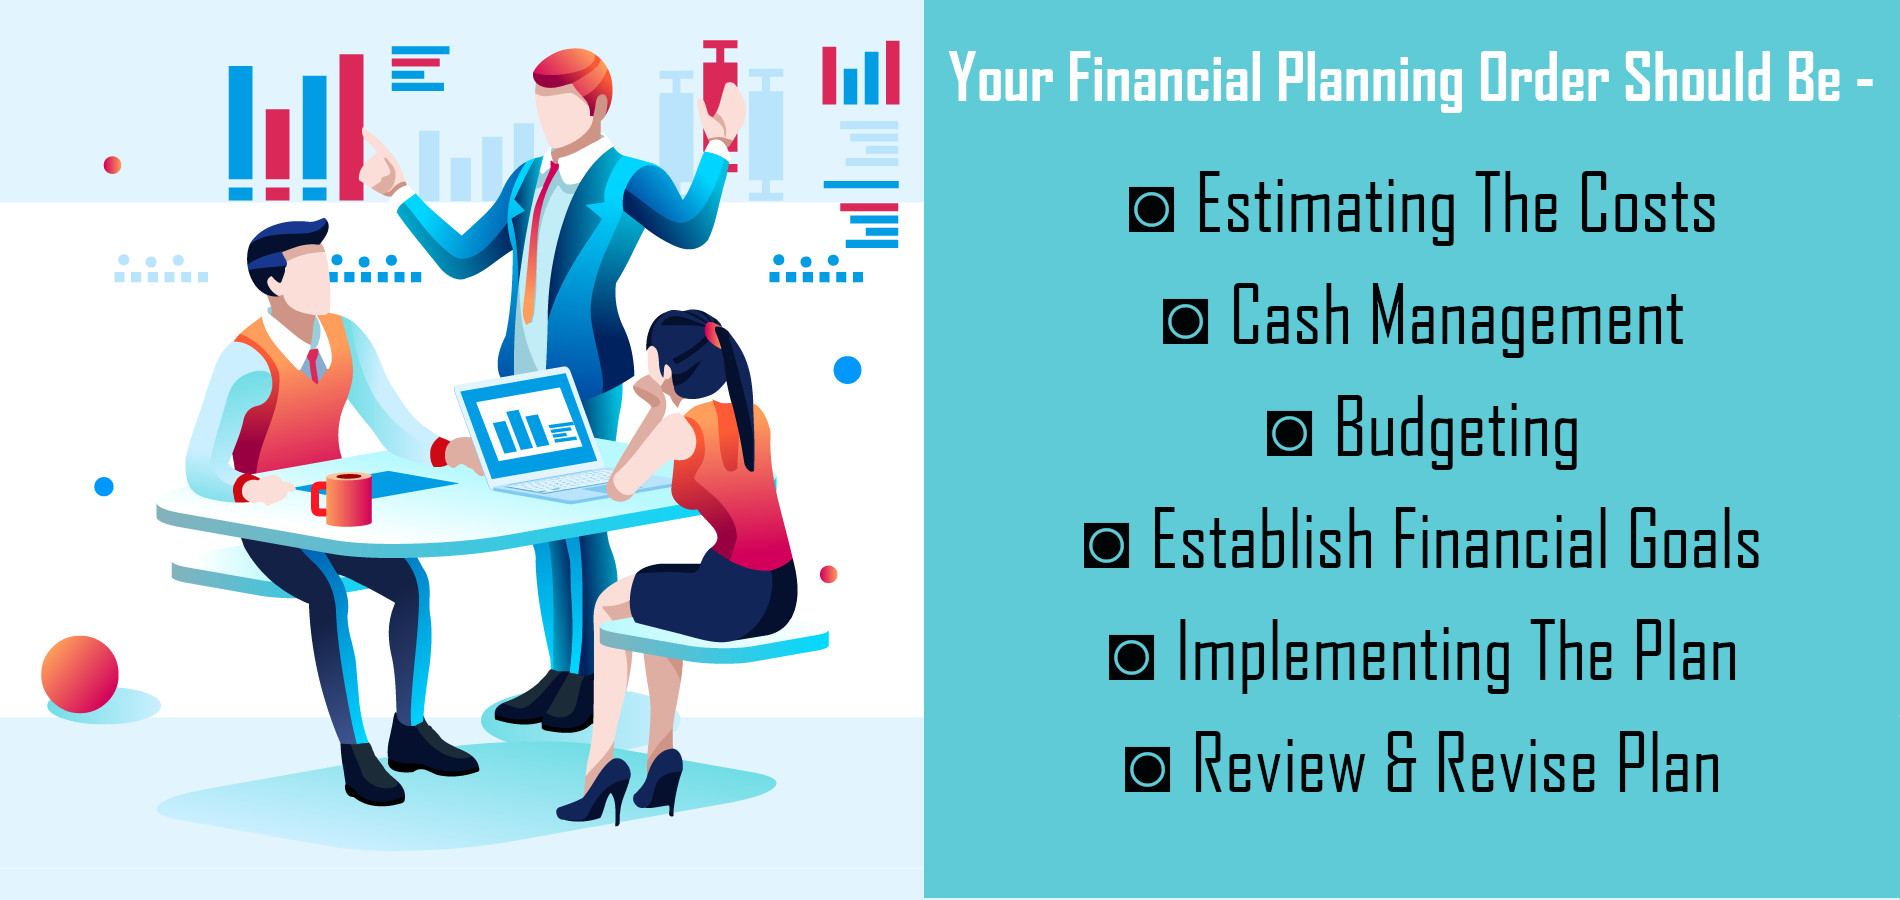 financial-planning-steps